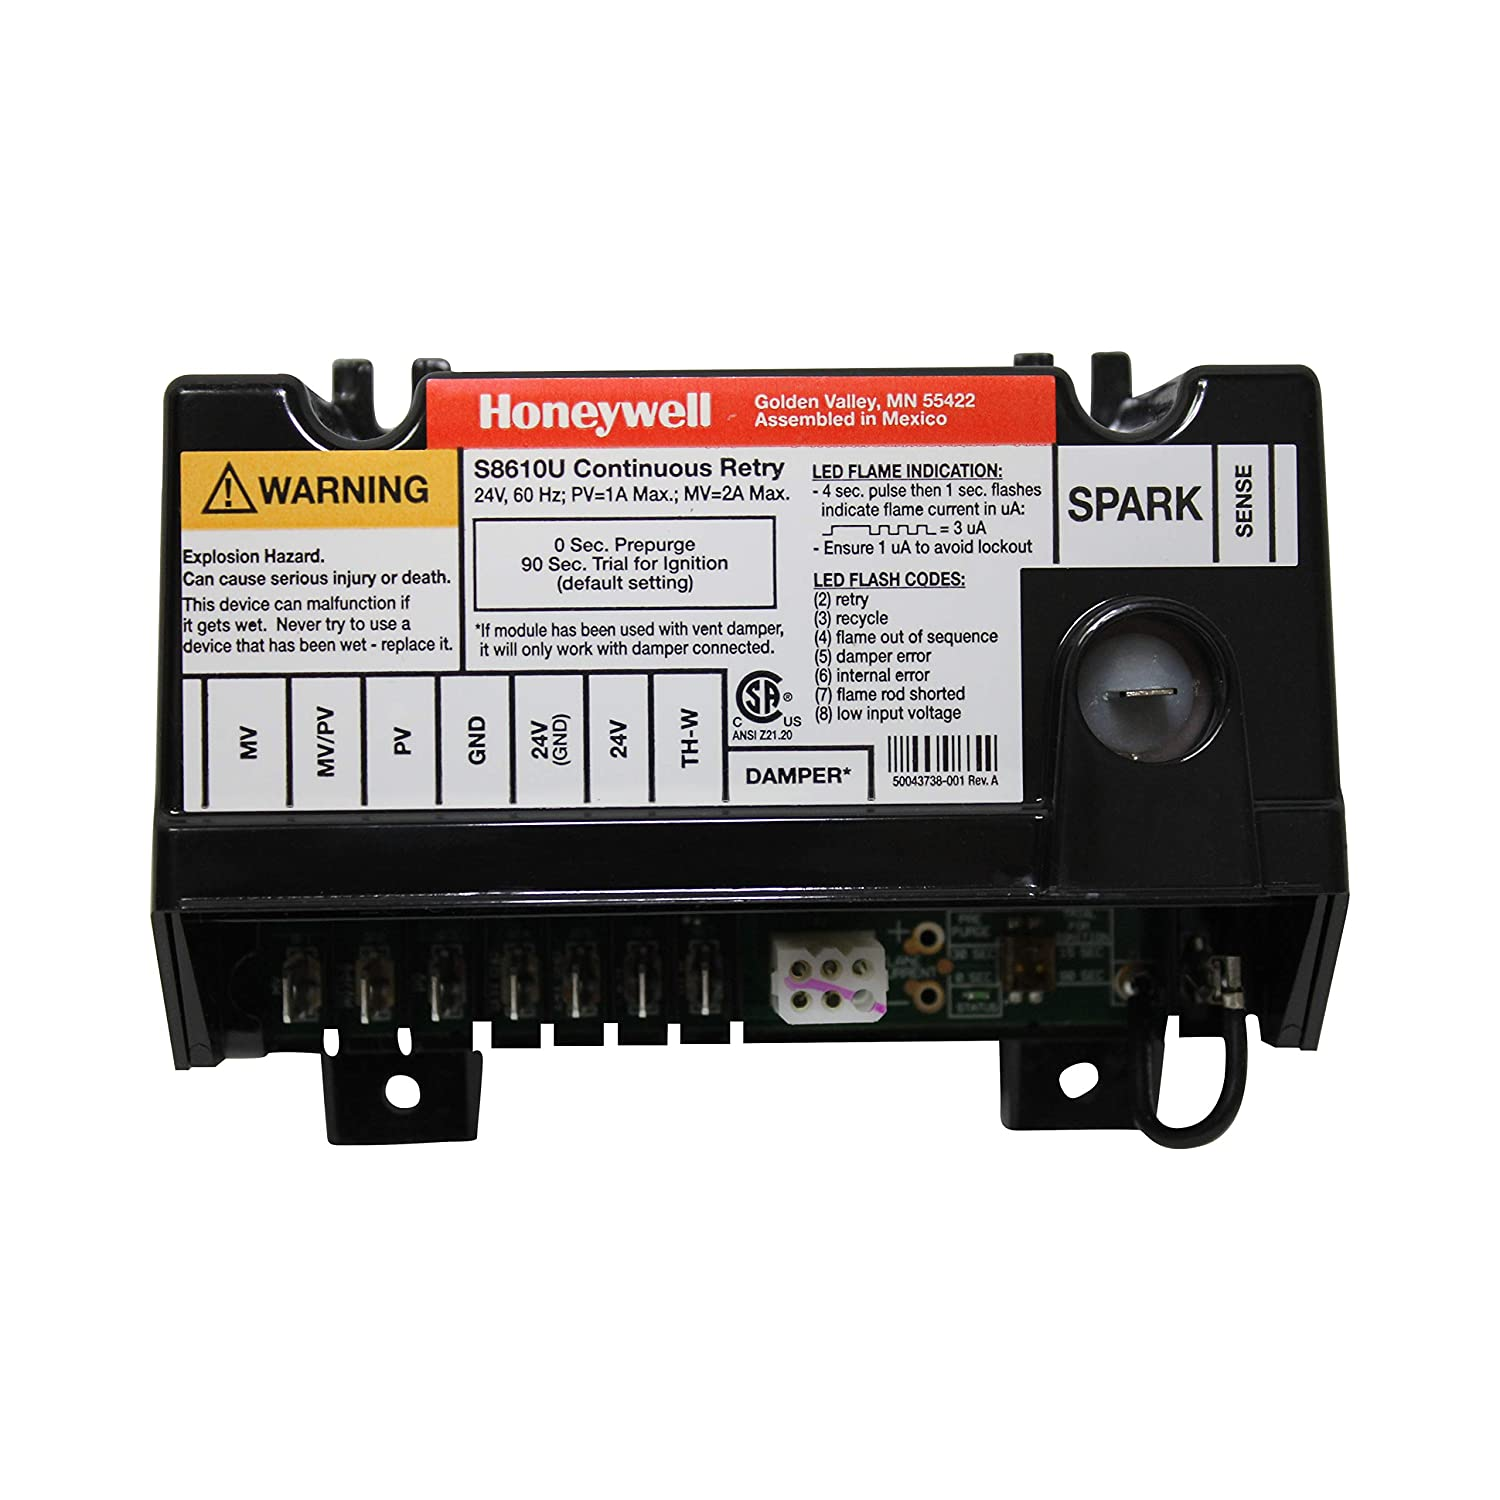 Honeywell S8610u3009 Furnace Intermittent Pilot Control For Electronic Ignition Wiring Diagram Ih Replacement Household Ignitors